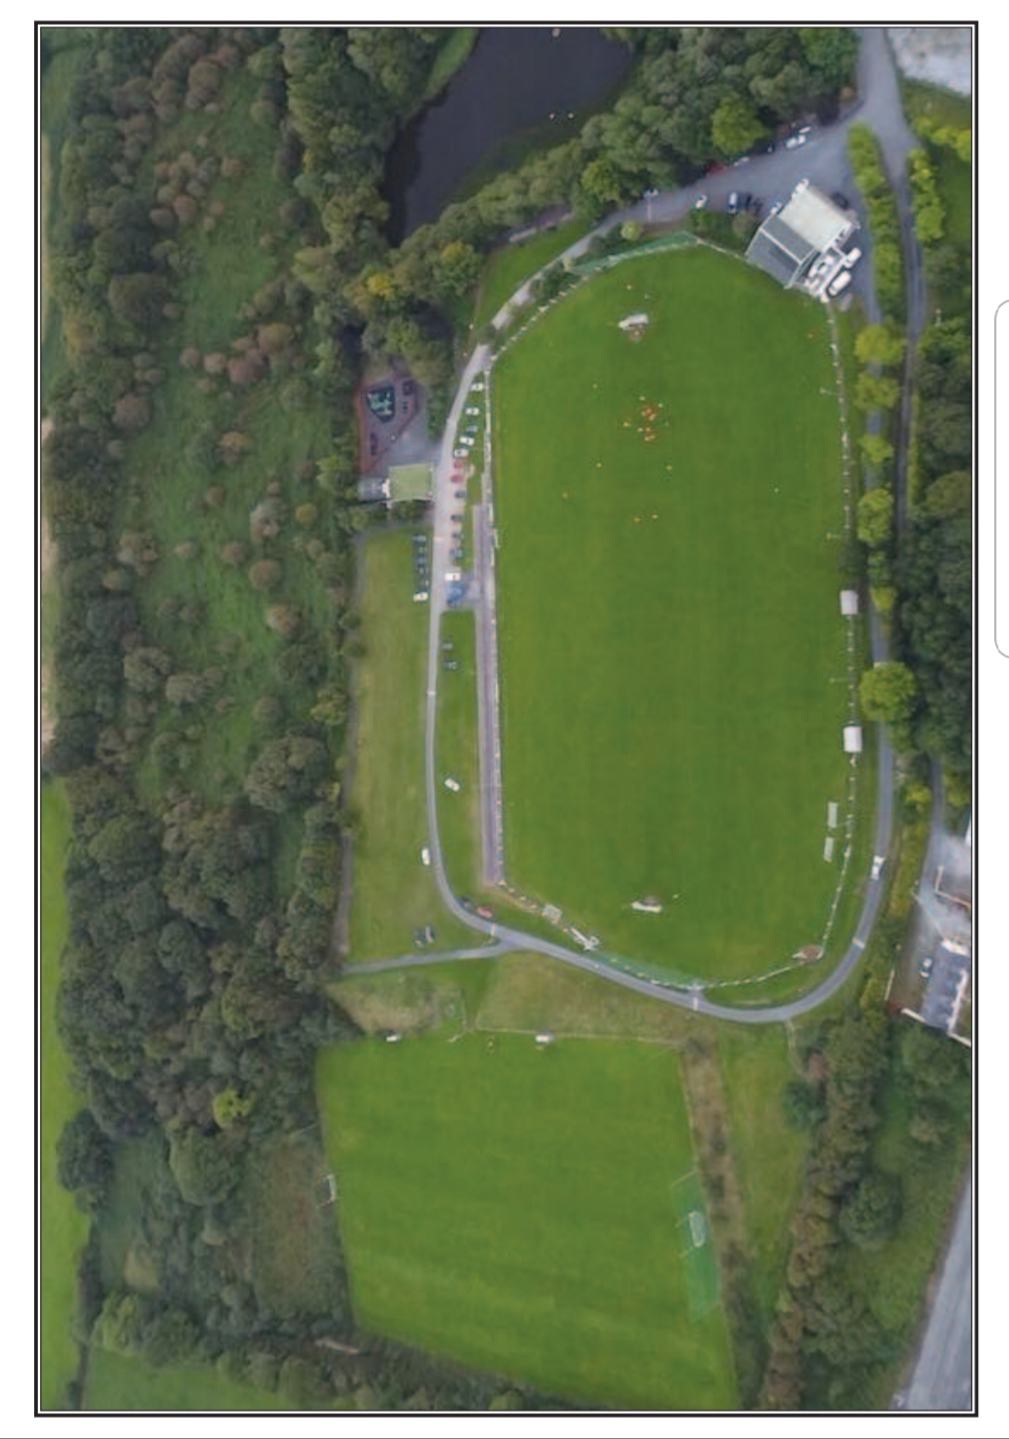 Banteer Sportsfield Project 2019 – Pitch Pic